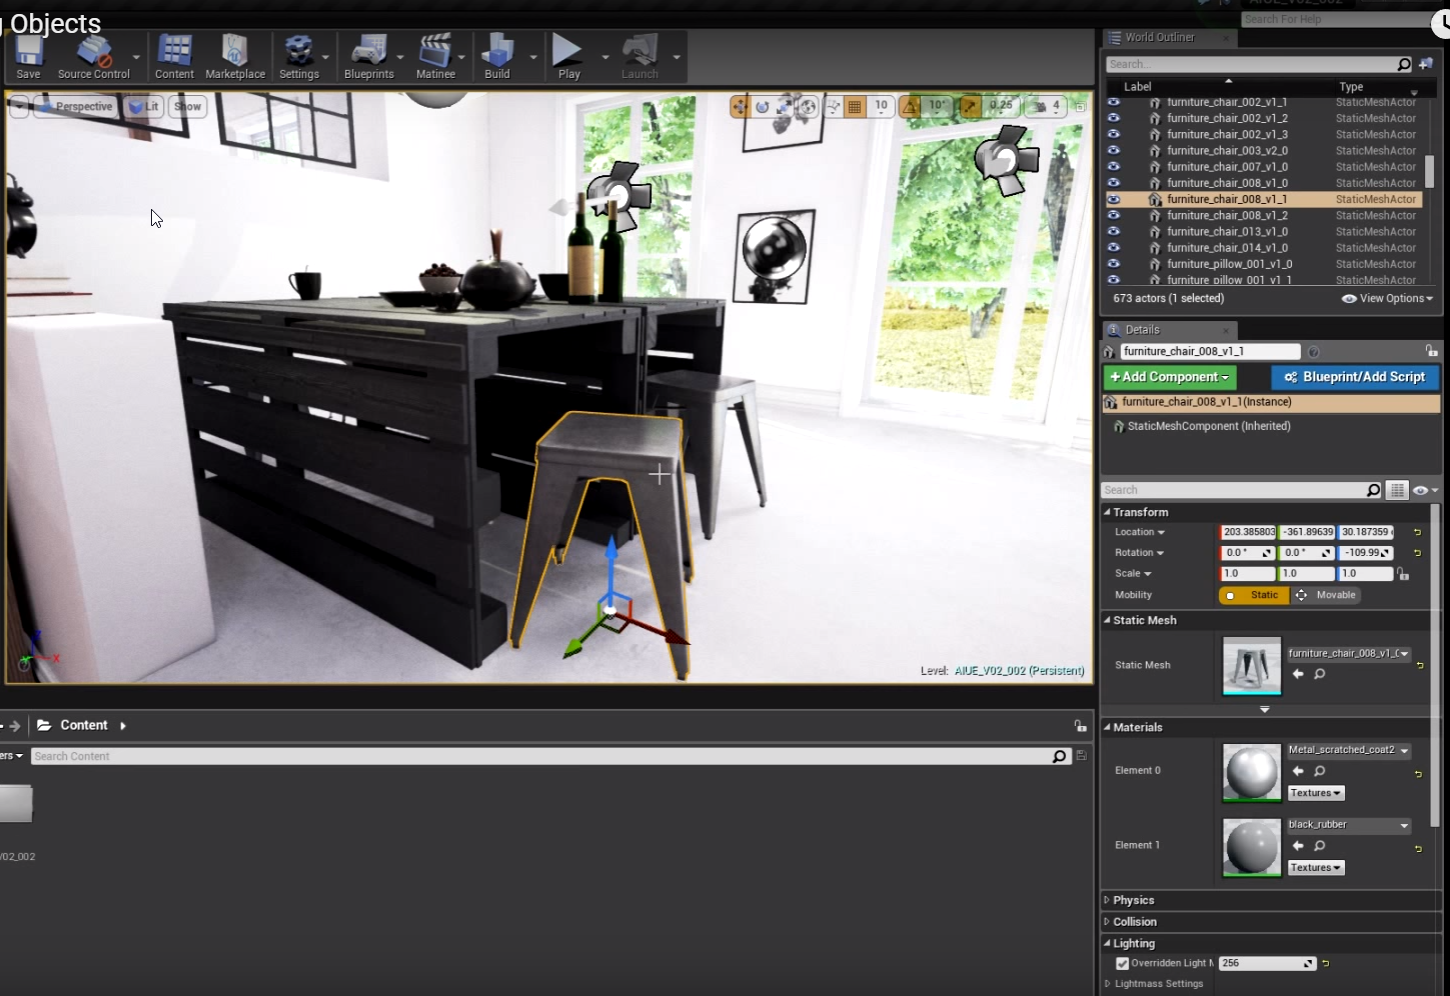 2017-08-09 17_40_51-Unreal Engine Tip 2 - Exporting Objects - YouTube.png